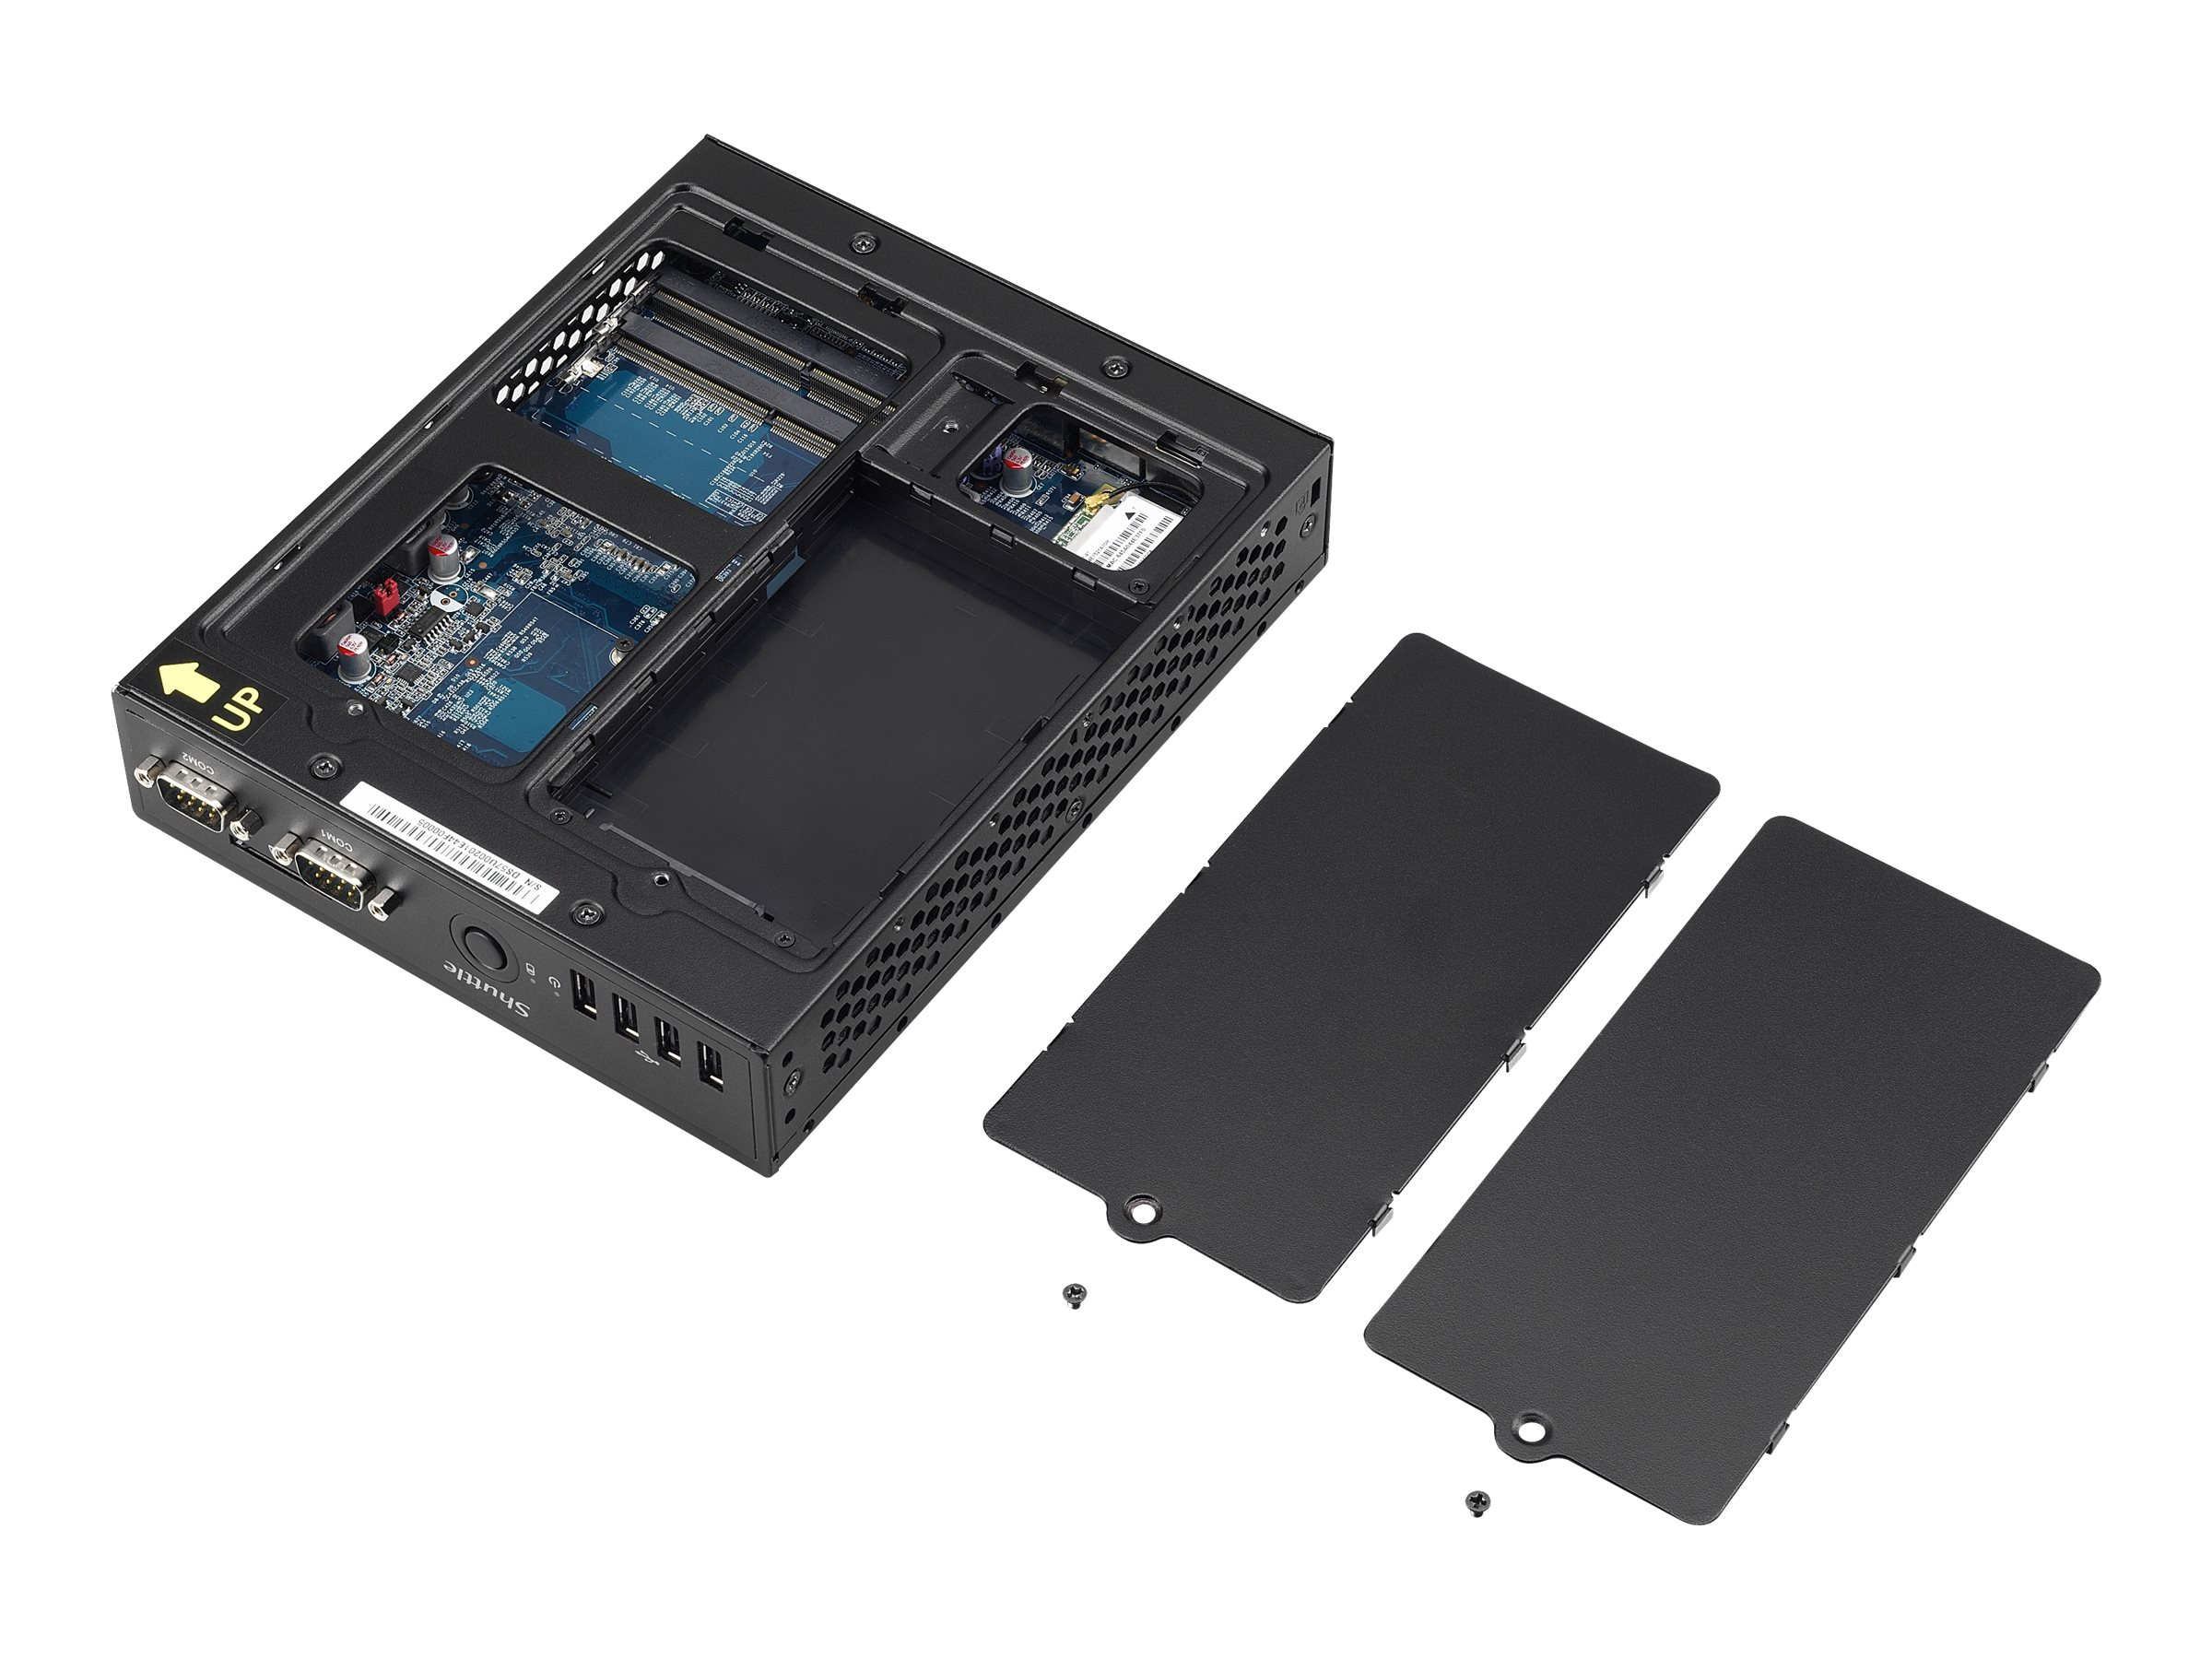 Shuttle Barebones, DS57U3 Slim PC Core i3-5005U Max. 8GB DDR3L 1x2.5 Bay HD5500 NoOS, DS57U3, 23622718, Barebones Systems